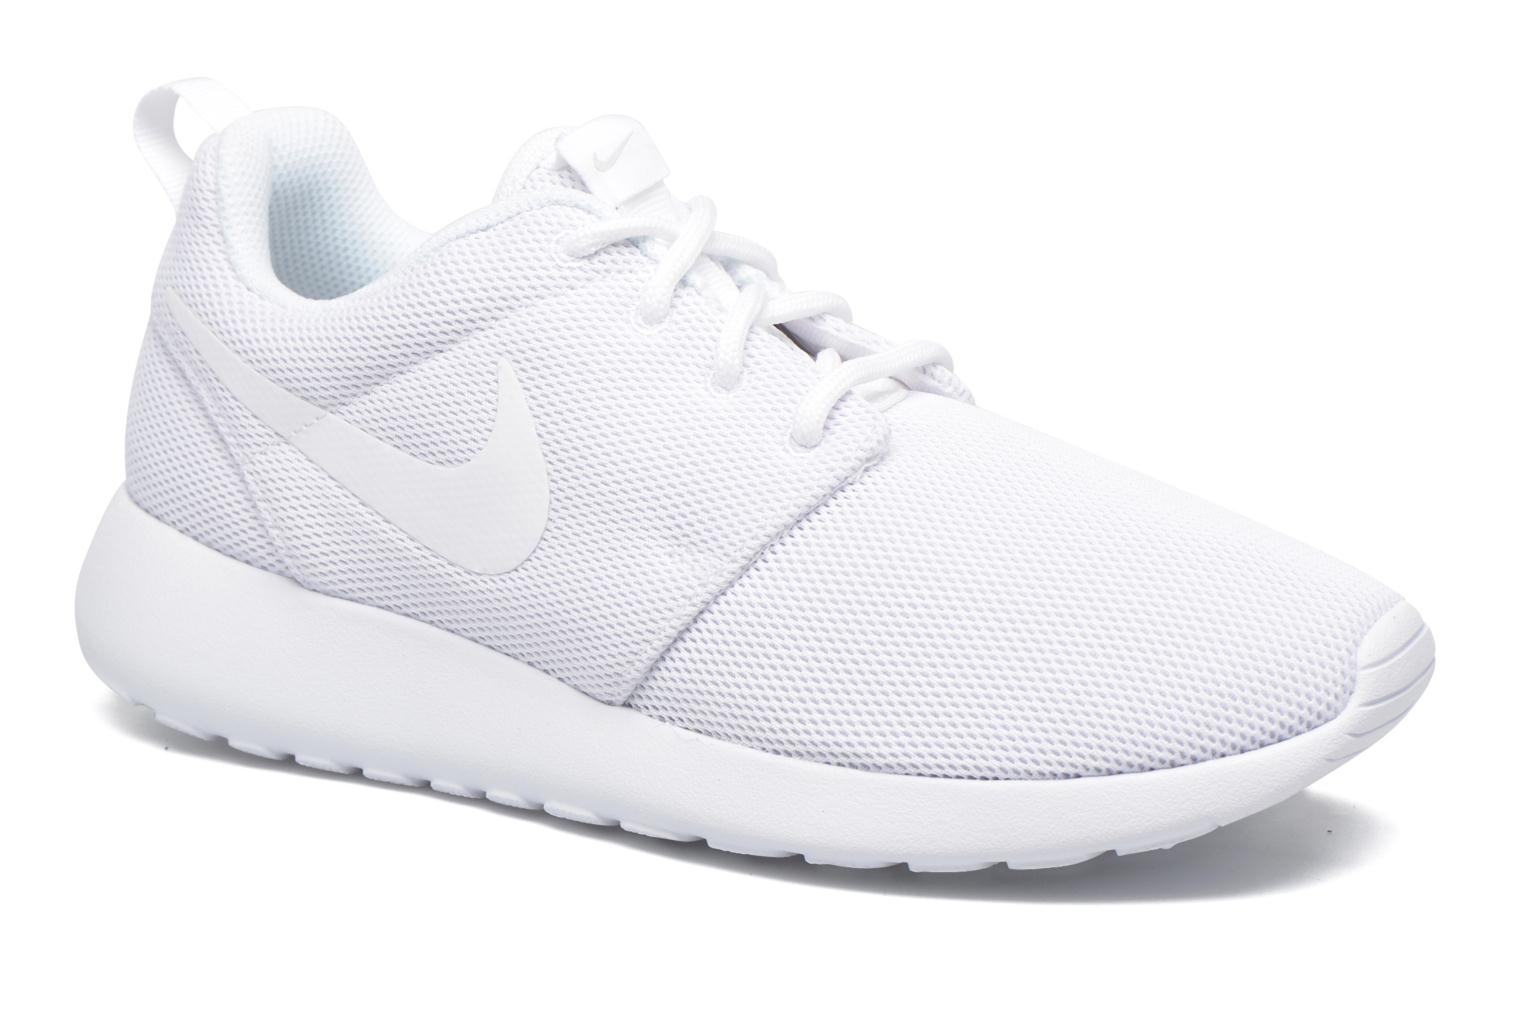 W Nike Roshe One White/White-Pure Platinum